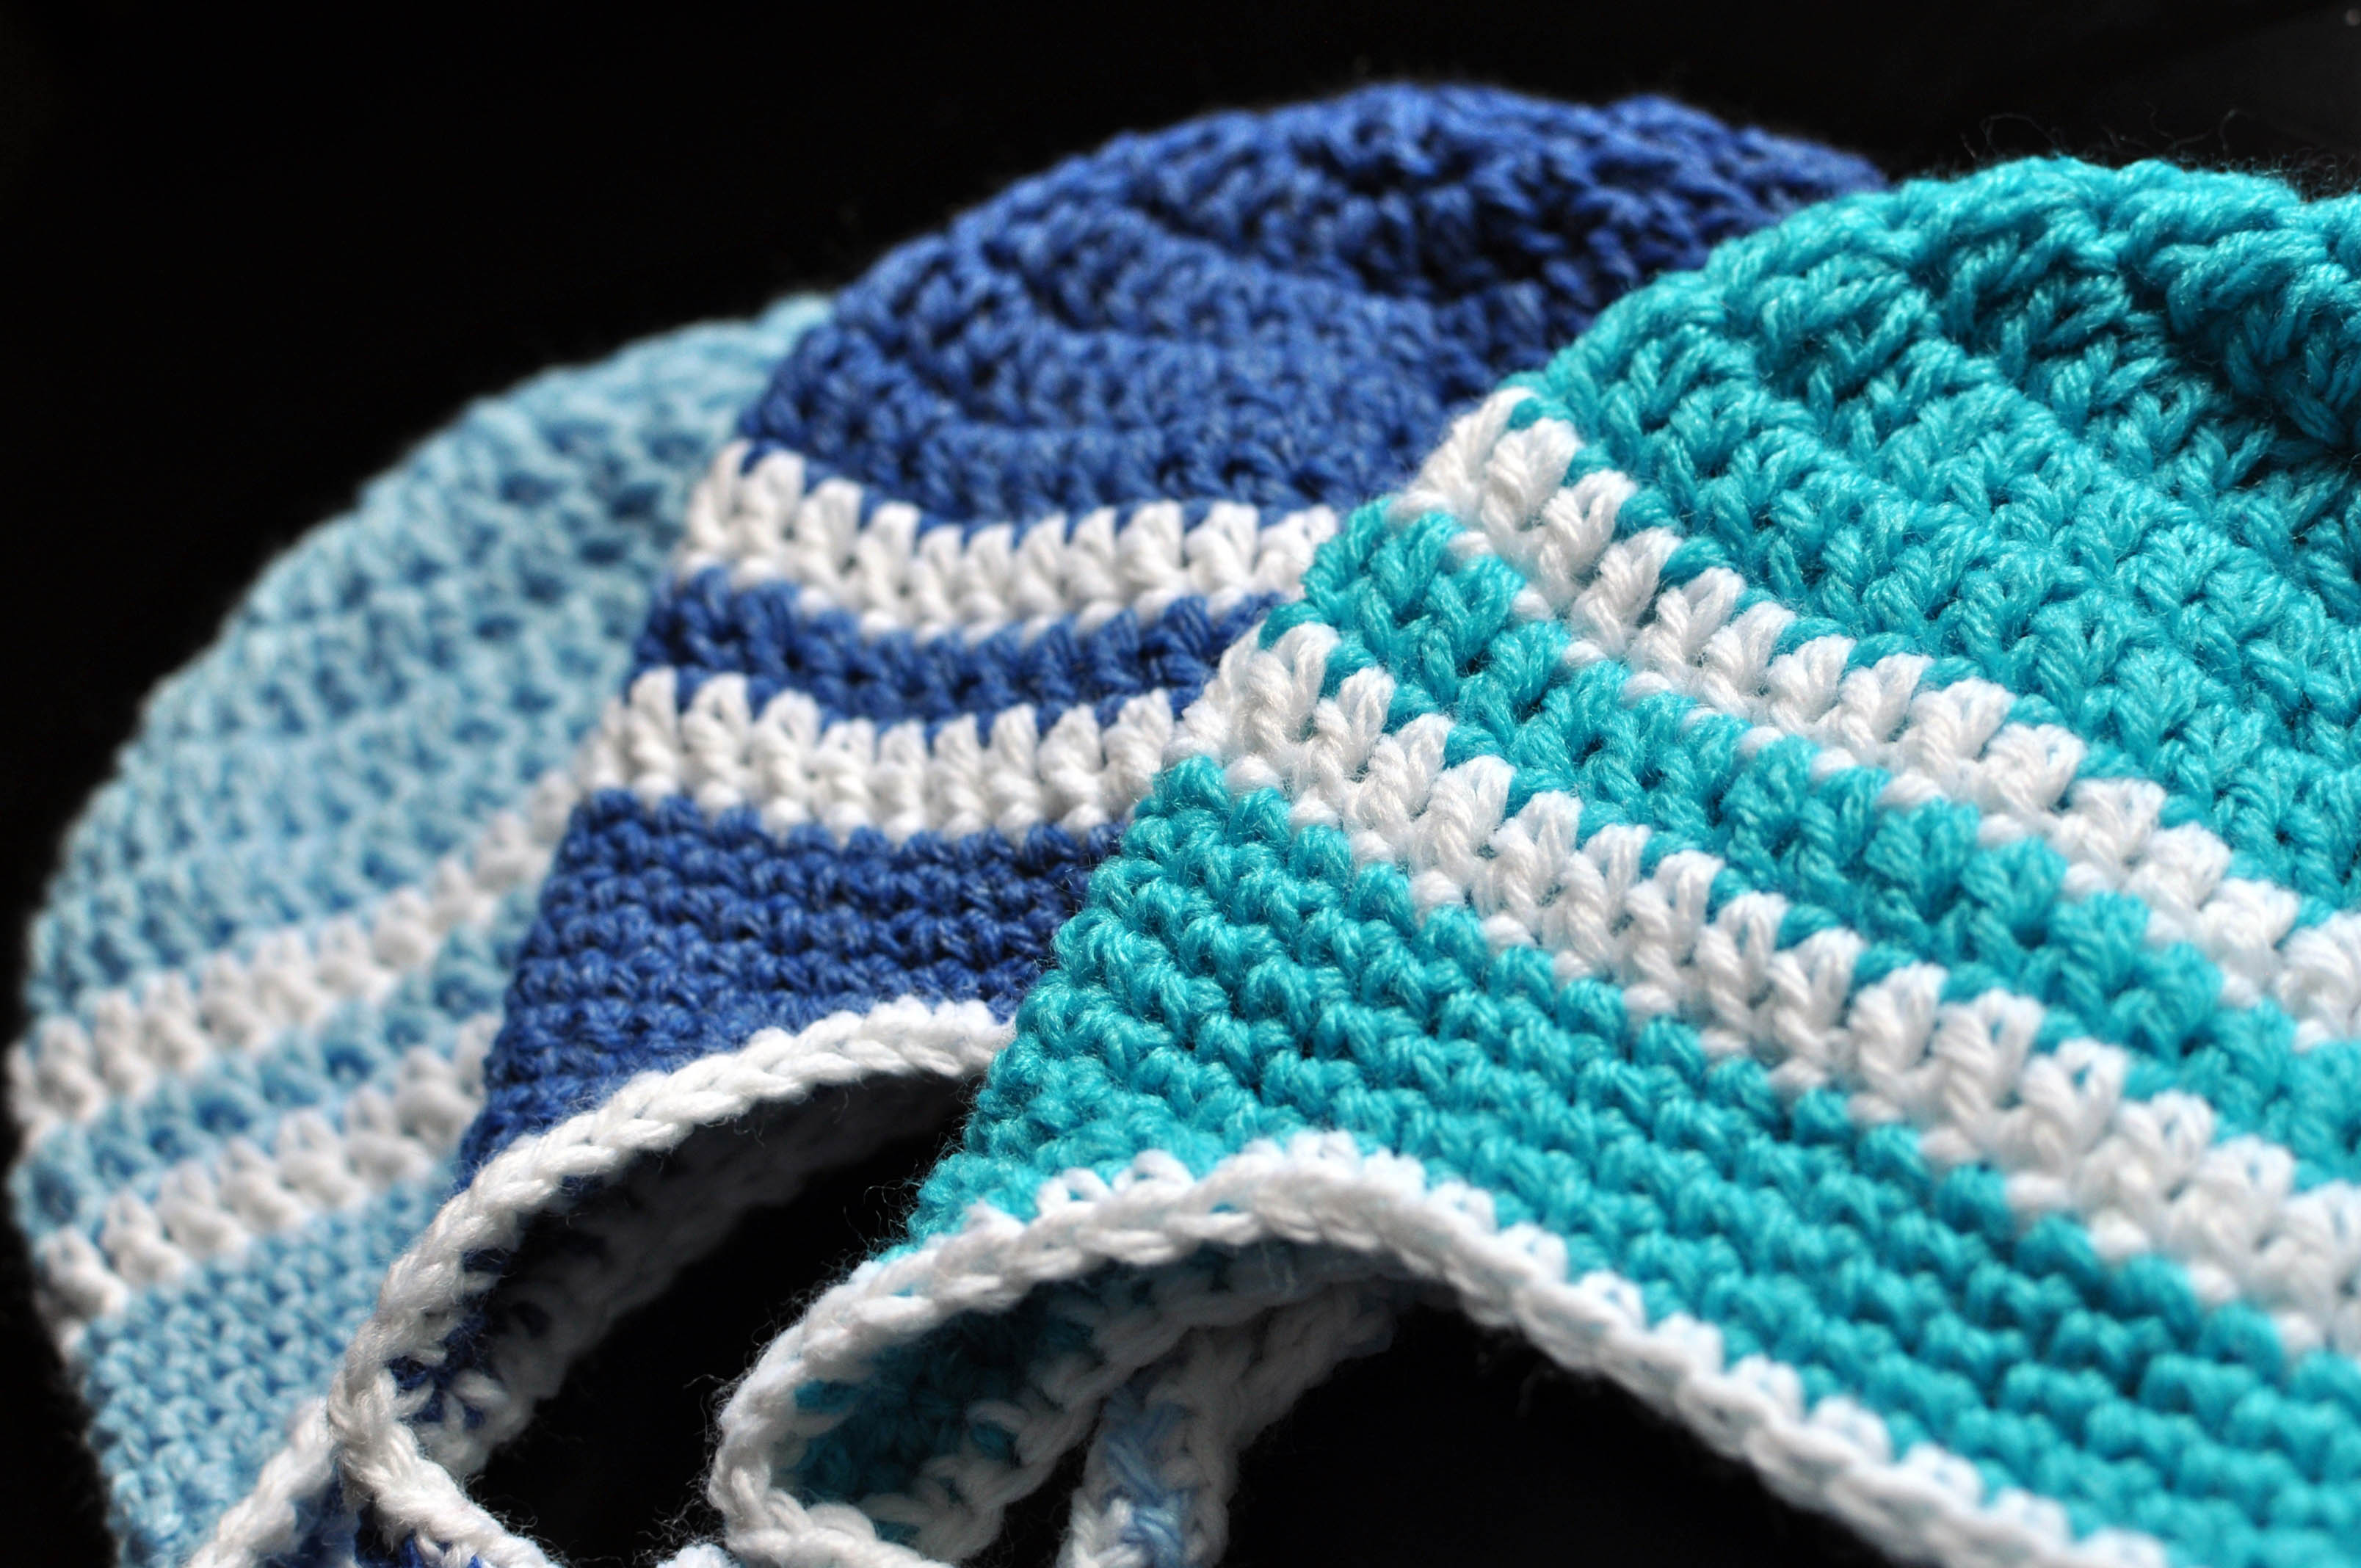 Free Crochet Pattern Toddler Earflap Hat : Free Crochet Pattern: Striped Earflap Hat Classy Crochet